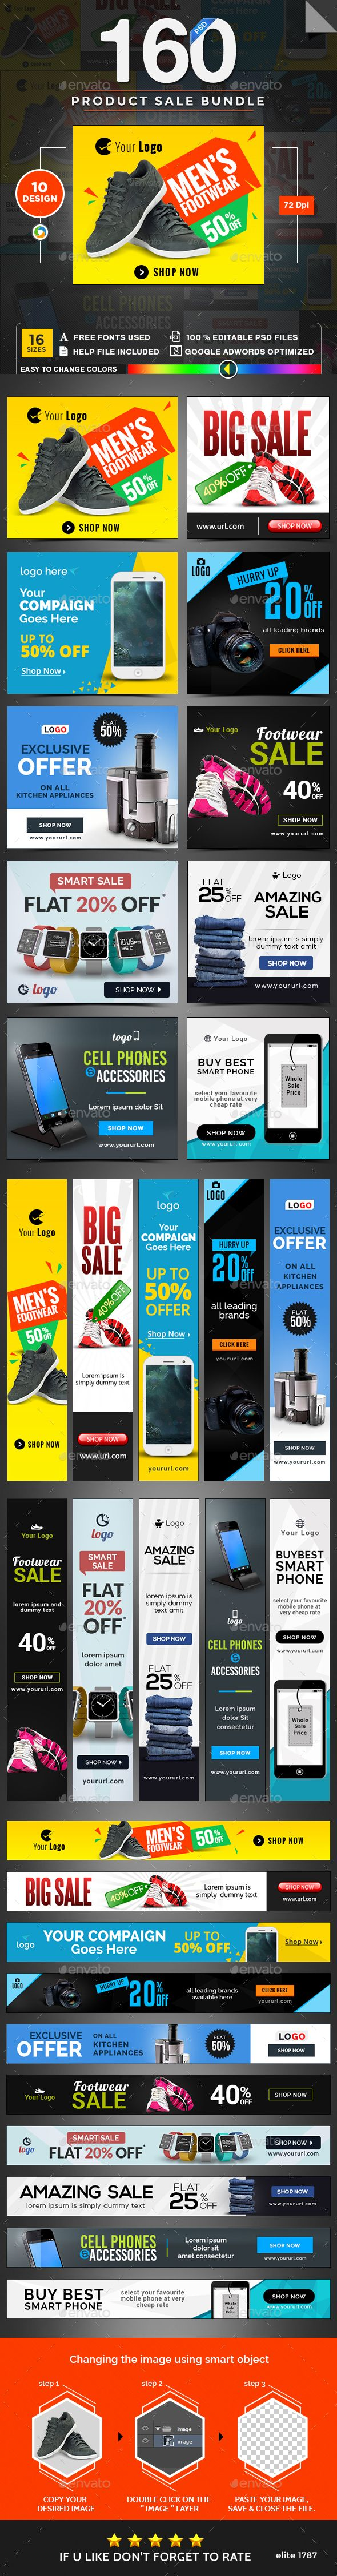 Product Sale Banner Templates PSD Bundle - 10 Sets - 160 Banners